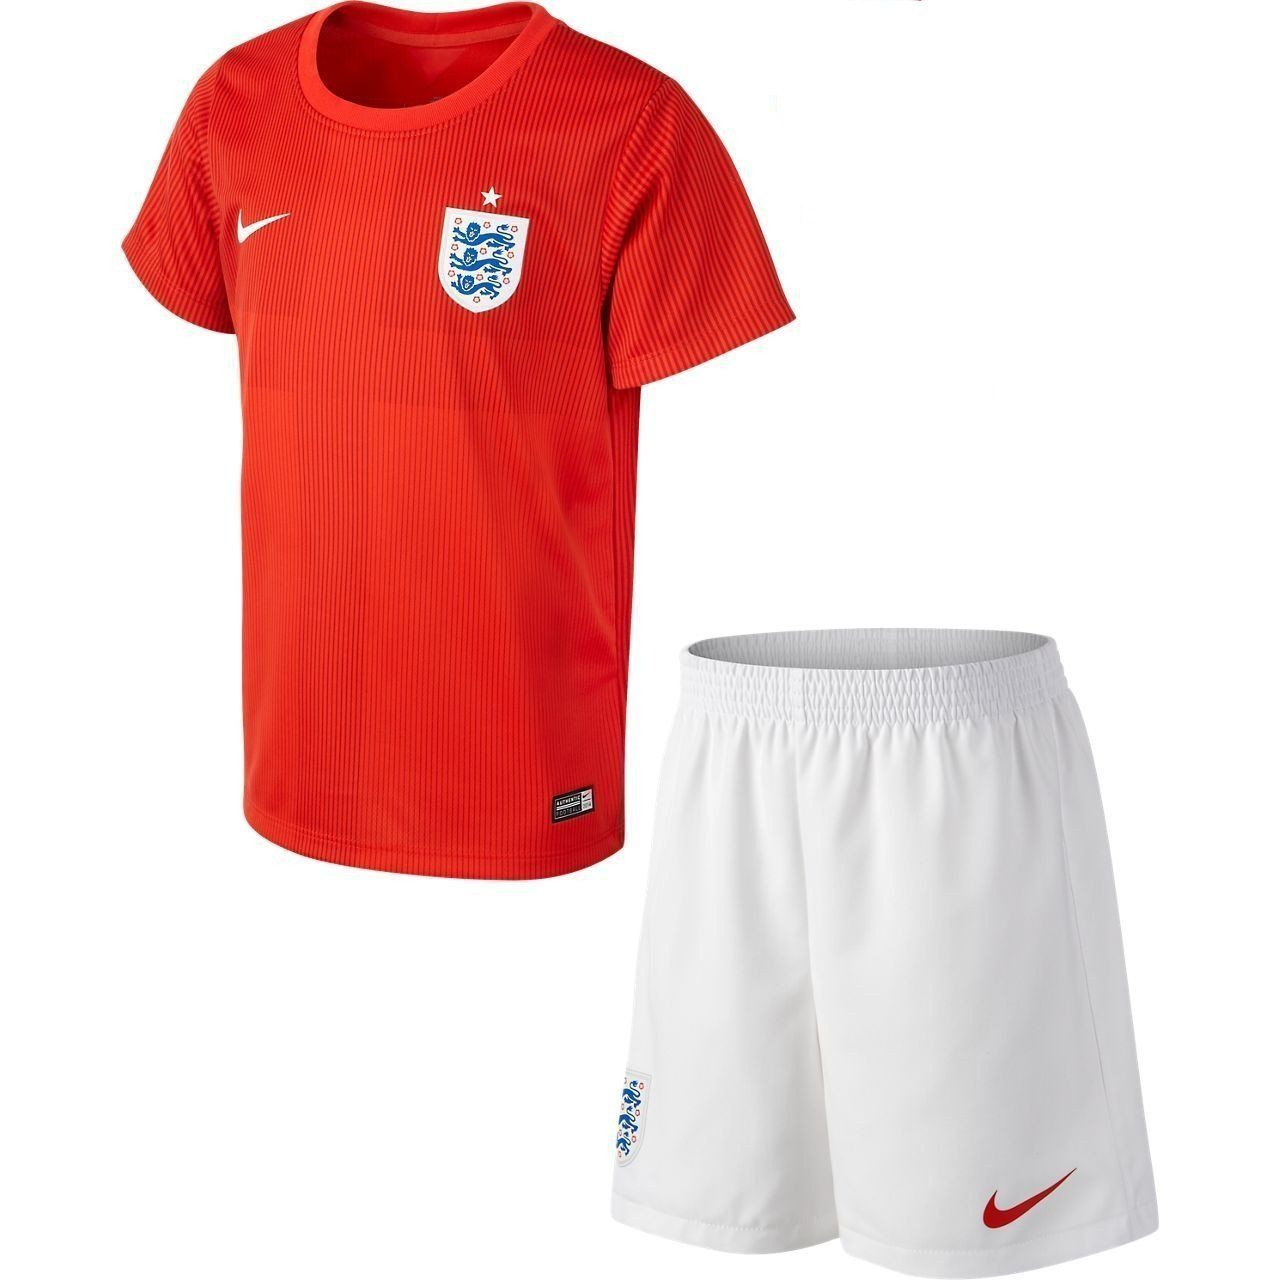 England Away Red World Cup 2018 2019 Jersey W Shorts Kid Youth For Age 3 13 World Cup Football Outfits Kids Shorts